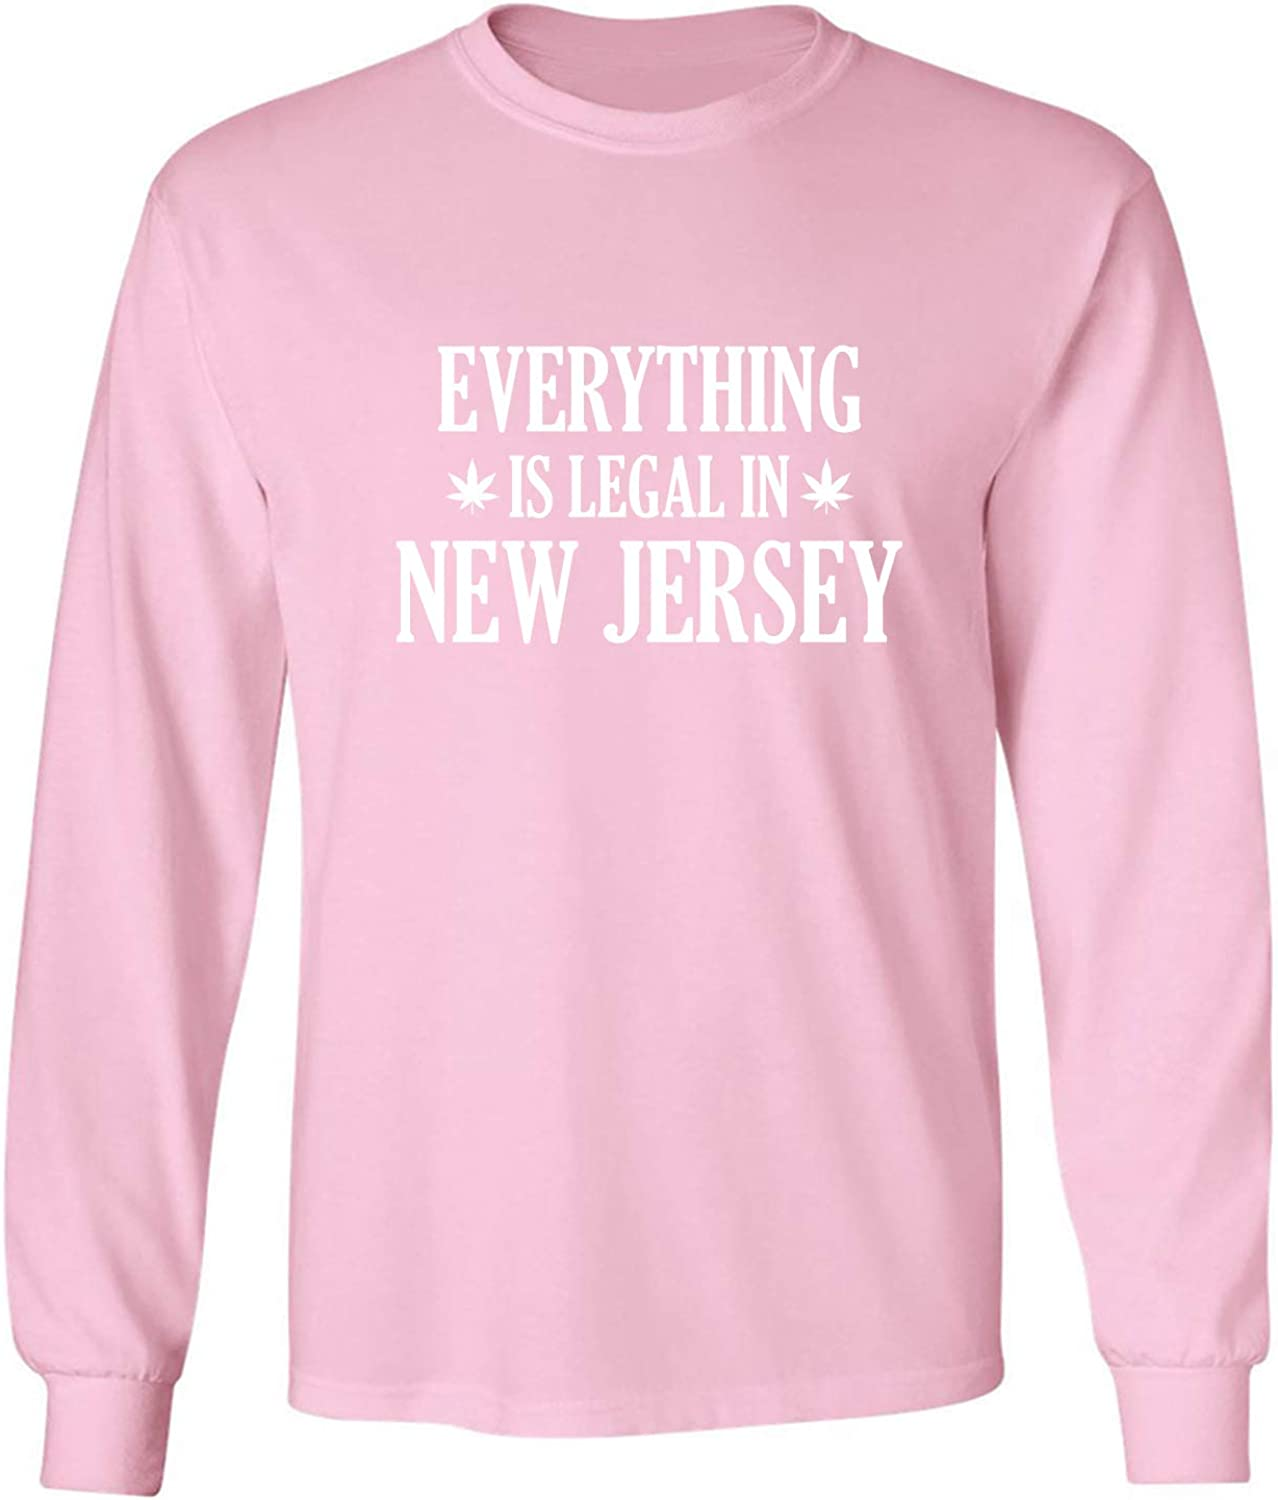 Everything is Legal in New Jersey Adult Long Sleeve T-Shirt in Pink - XXXX-Large